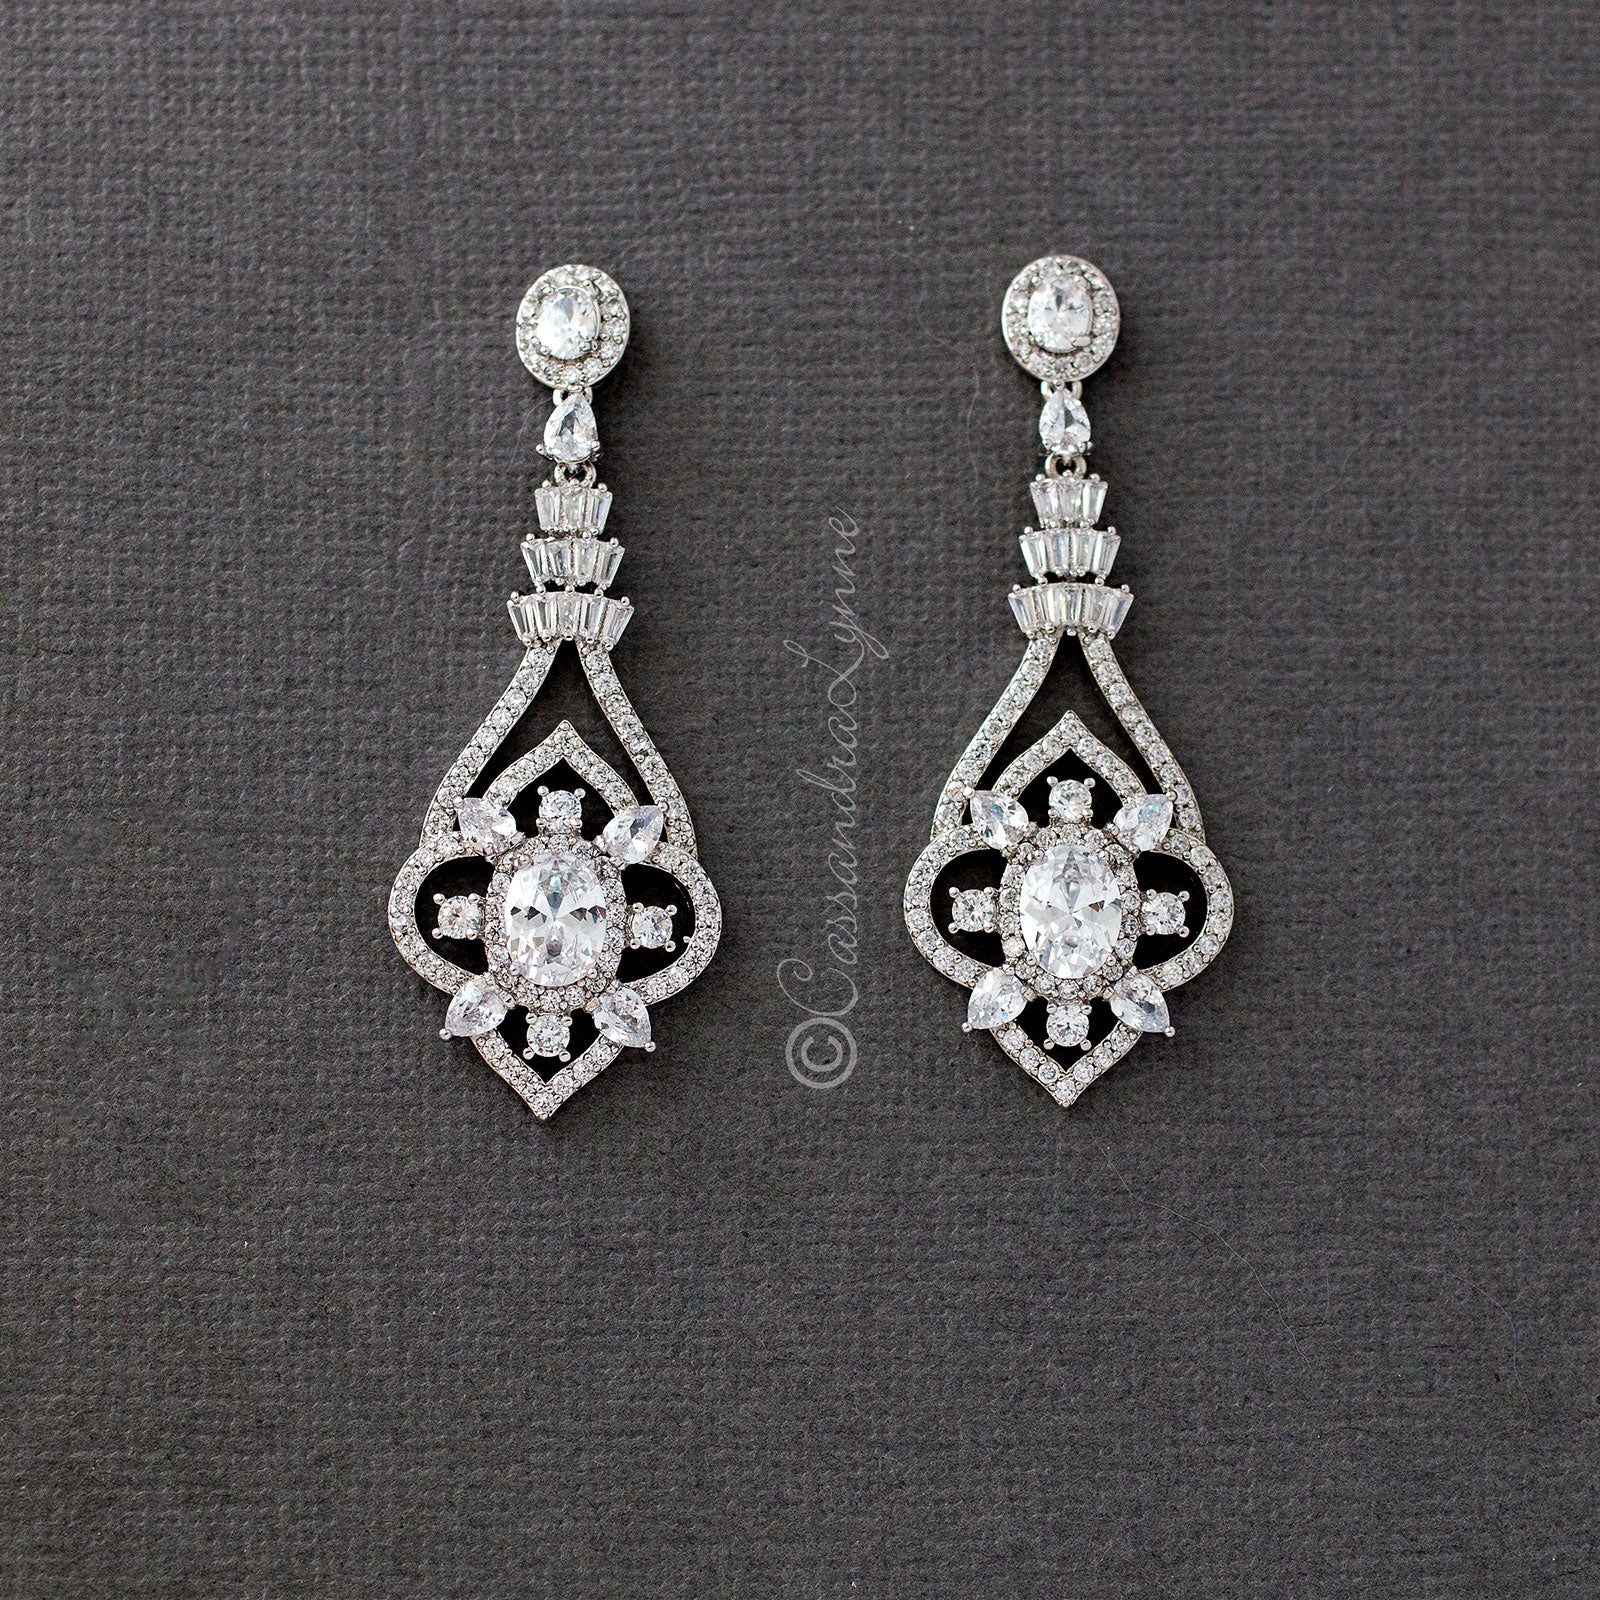 antique wedding earrings